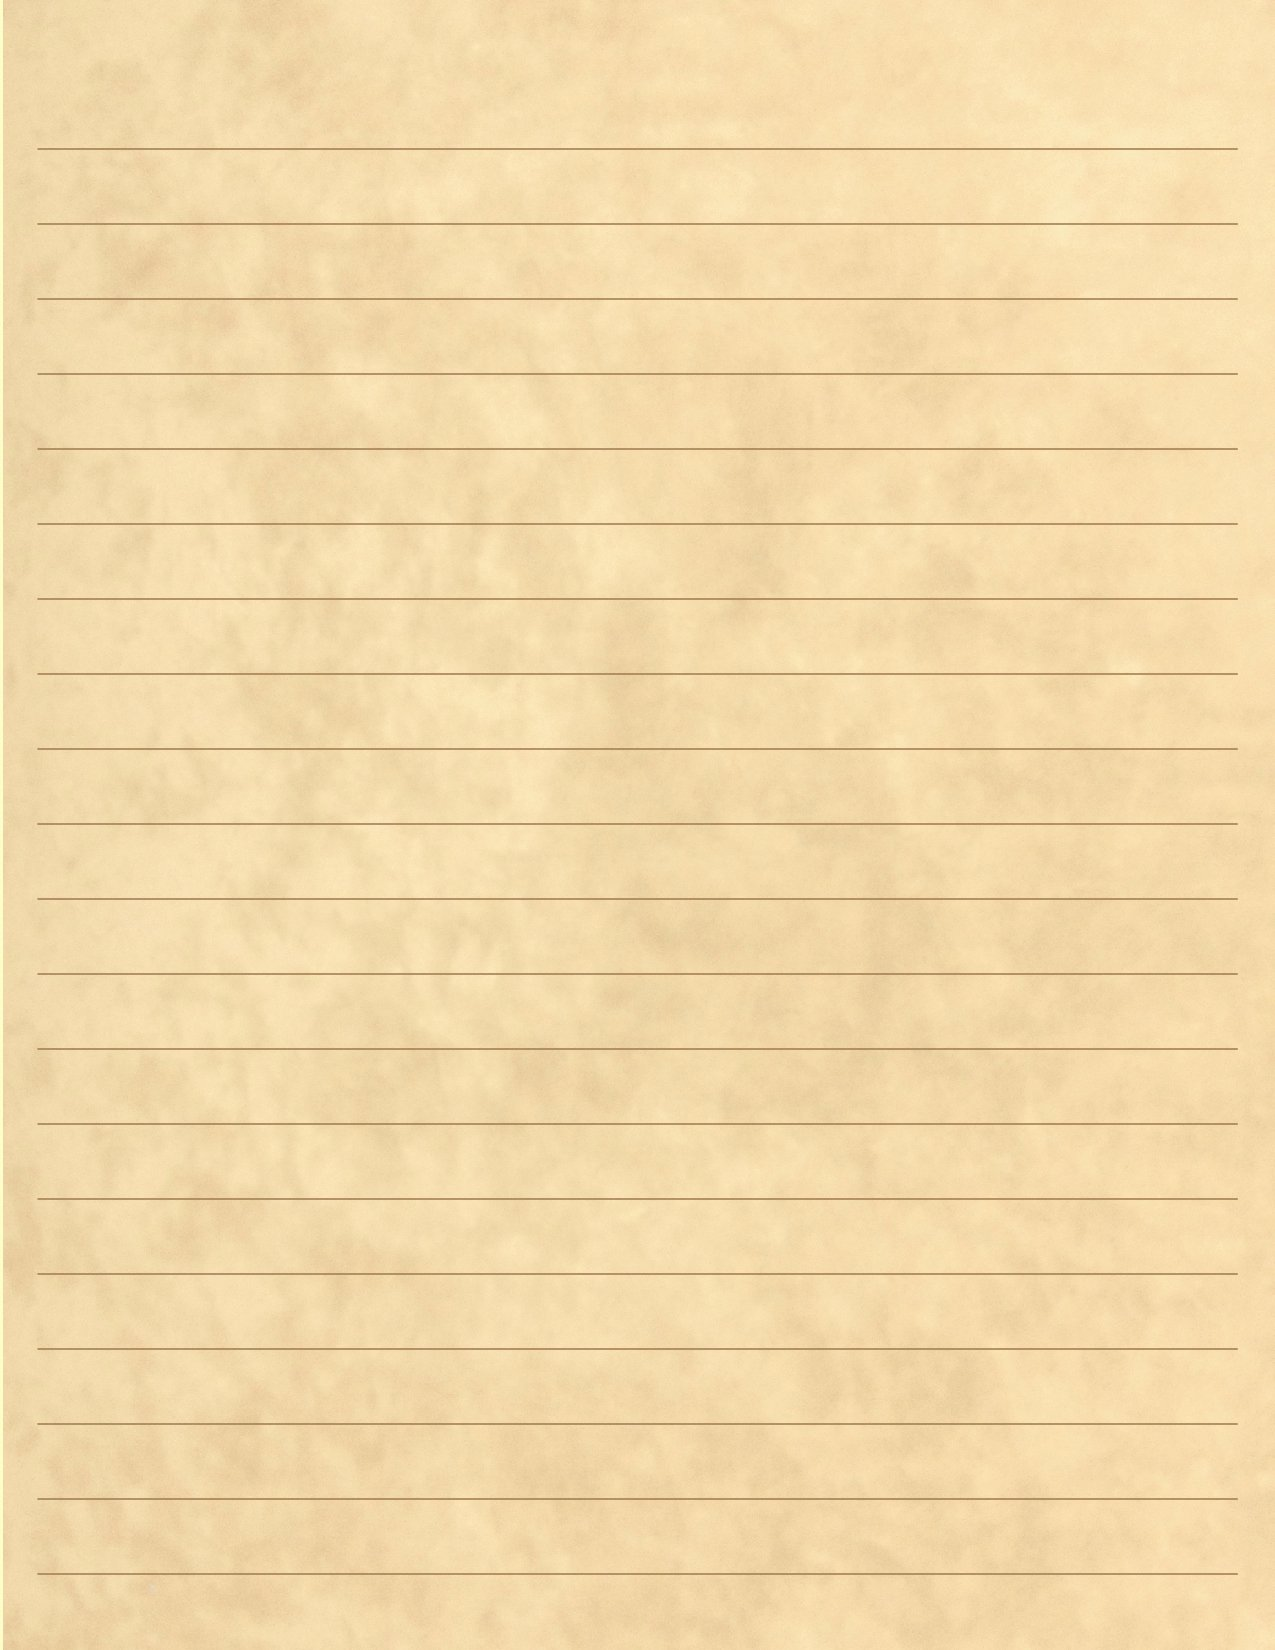 Picture Of Lined Paper Beautiful Tim Van De Vall Ics & Printables for Kids